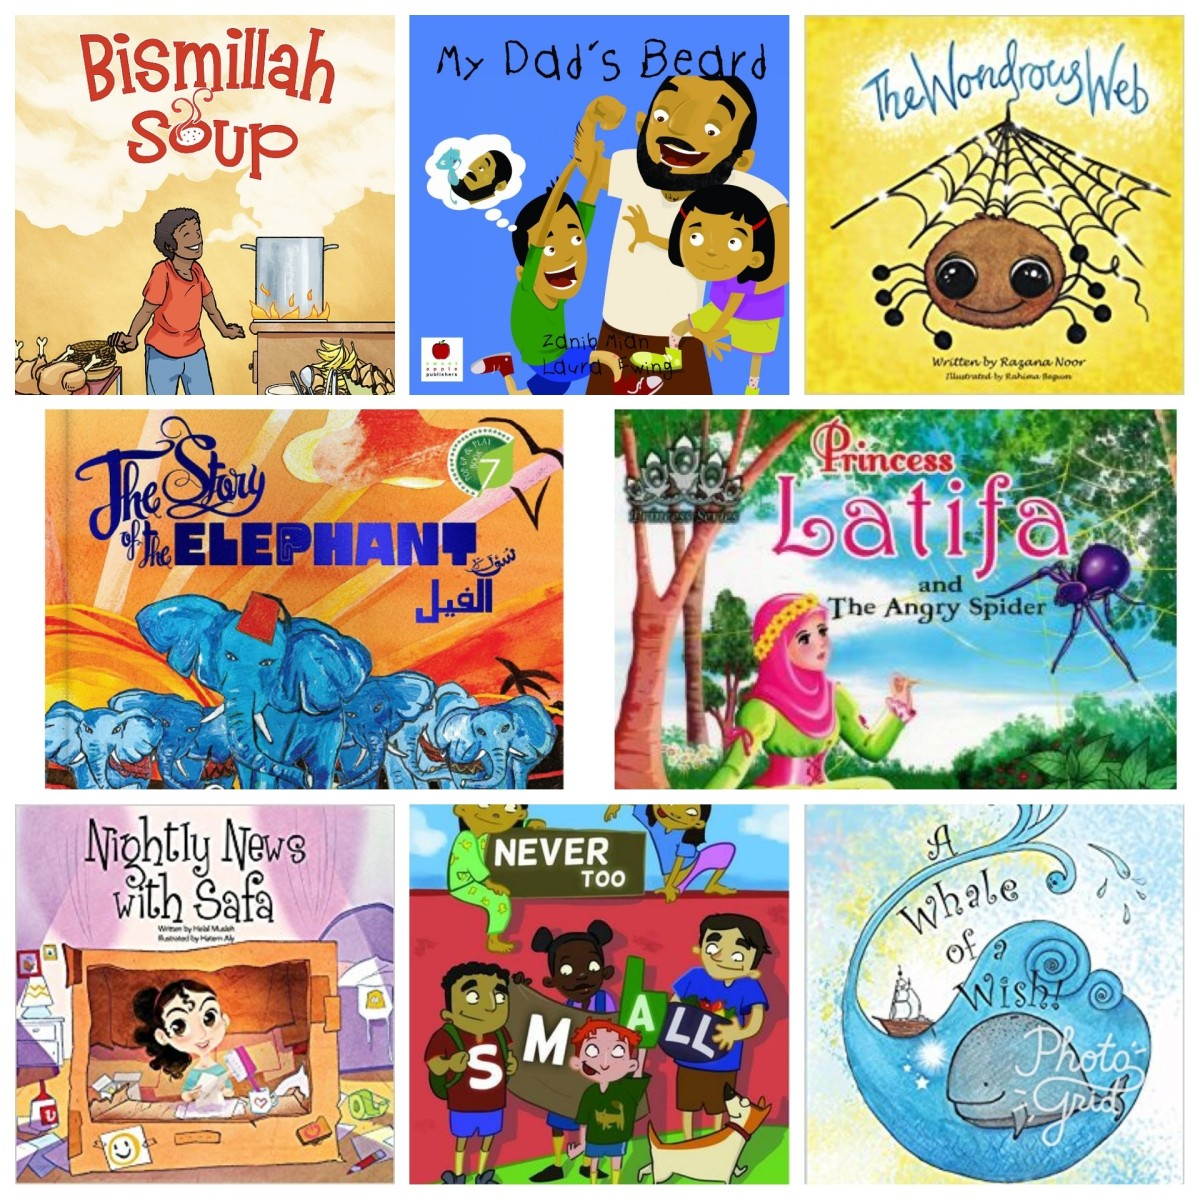 Our Top 10 Awesome Children's Islamic Story Books we highly recommend!